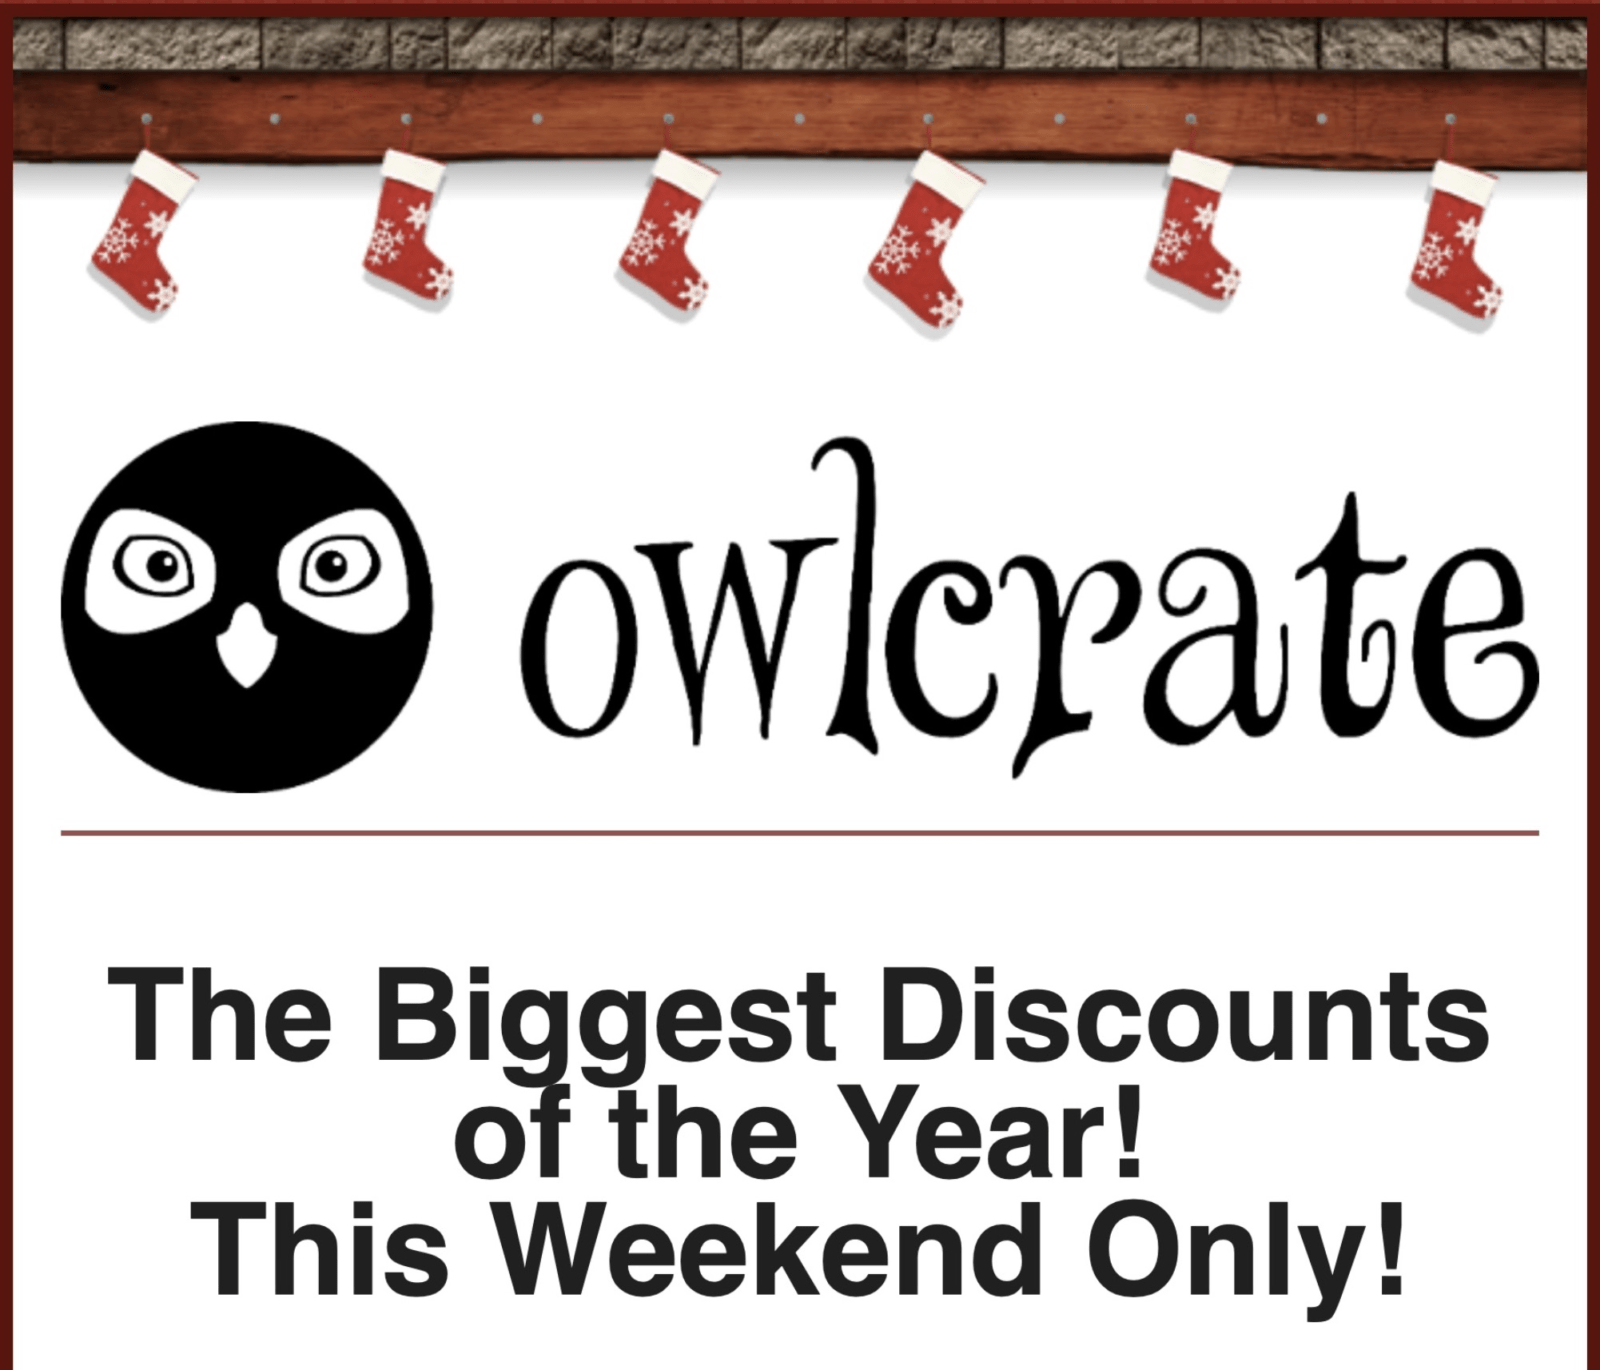 OwlCrate Black Friday Deals Start Now! Save Up To $27 on Subscriptions!